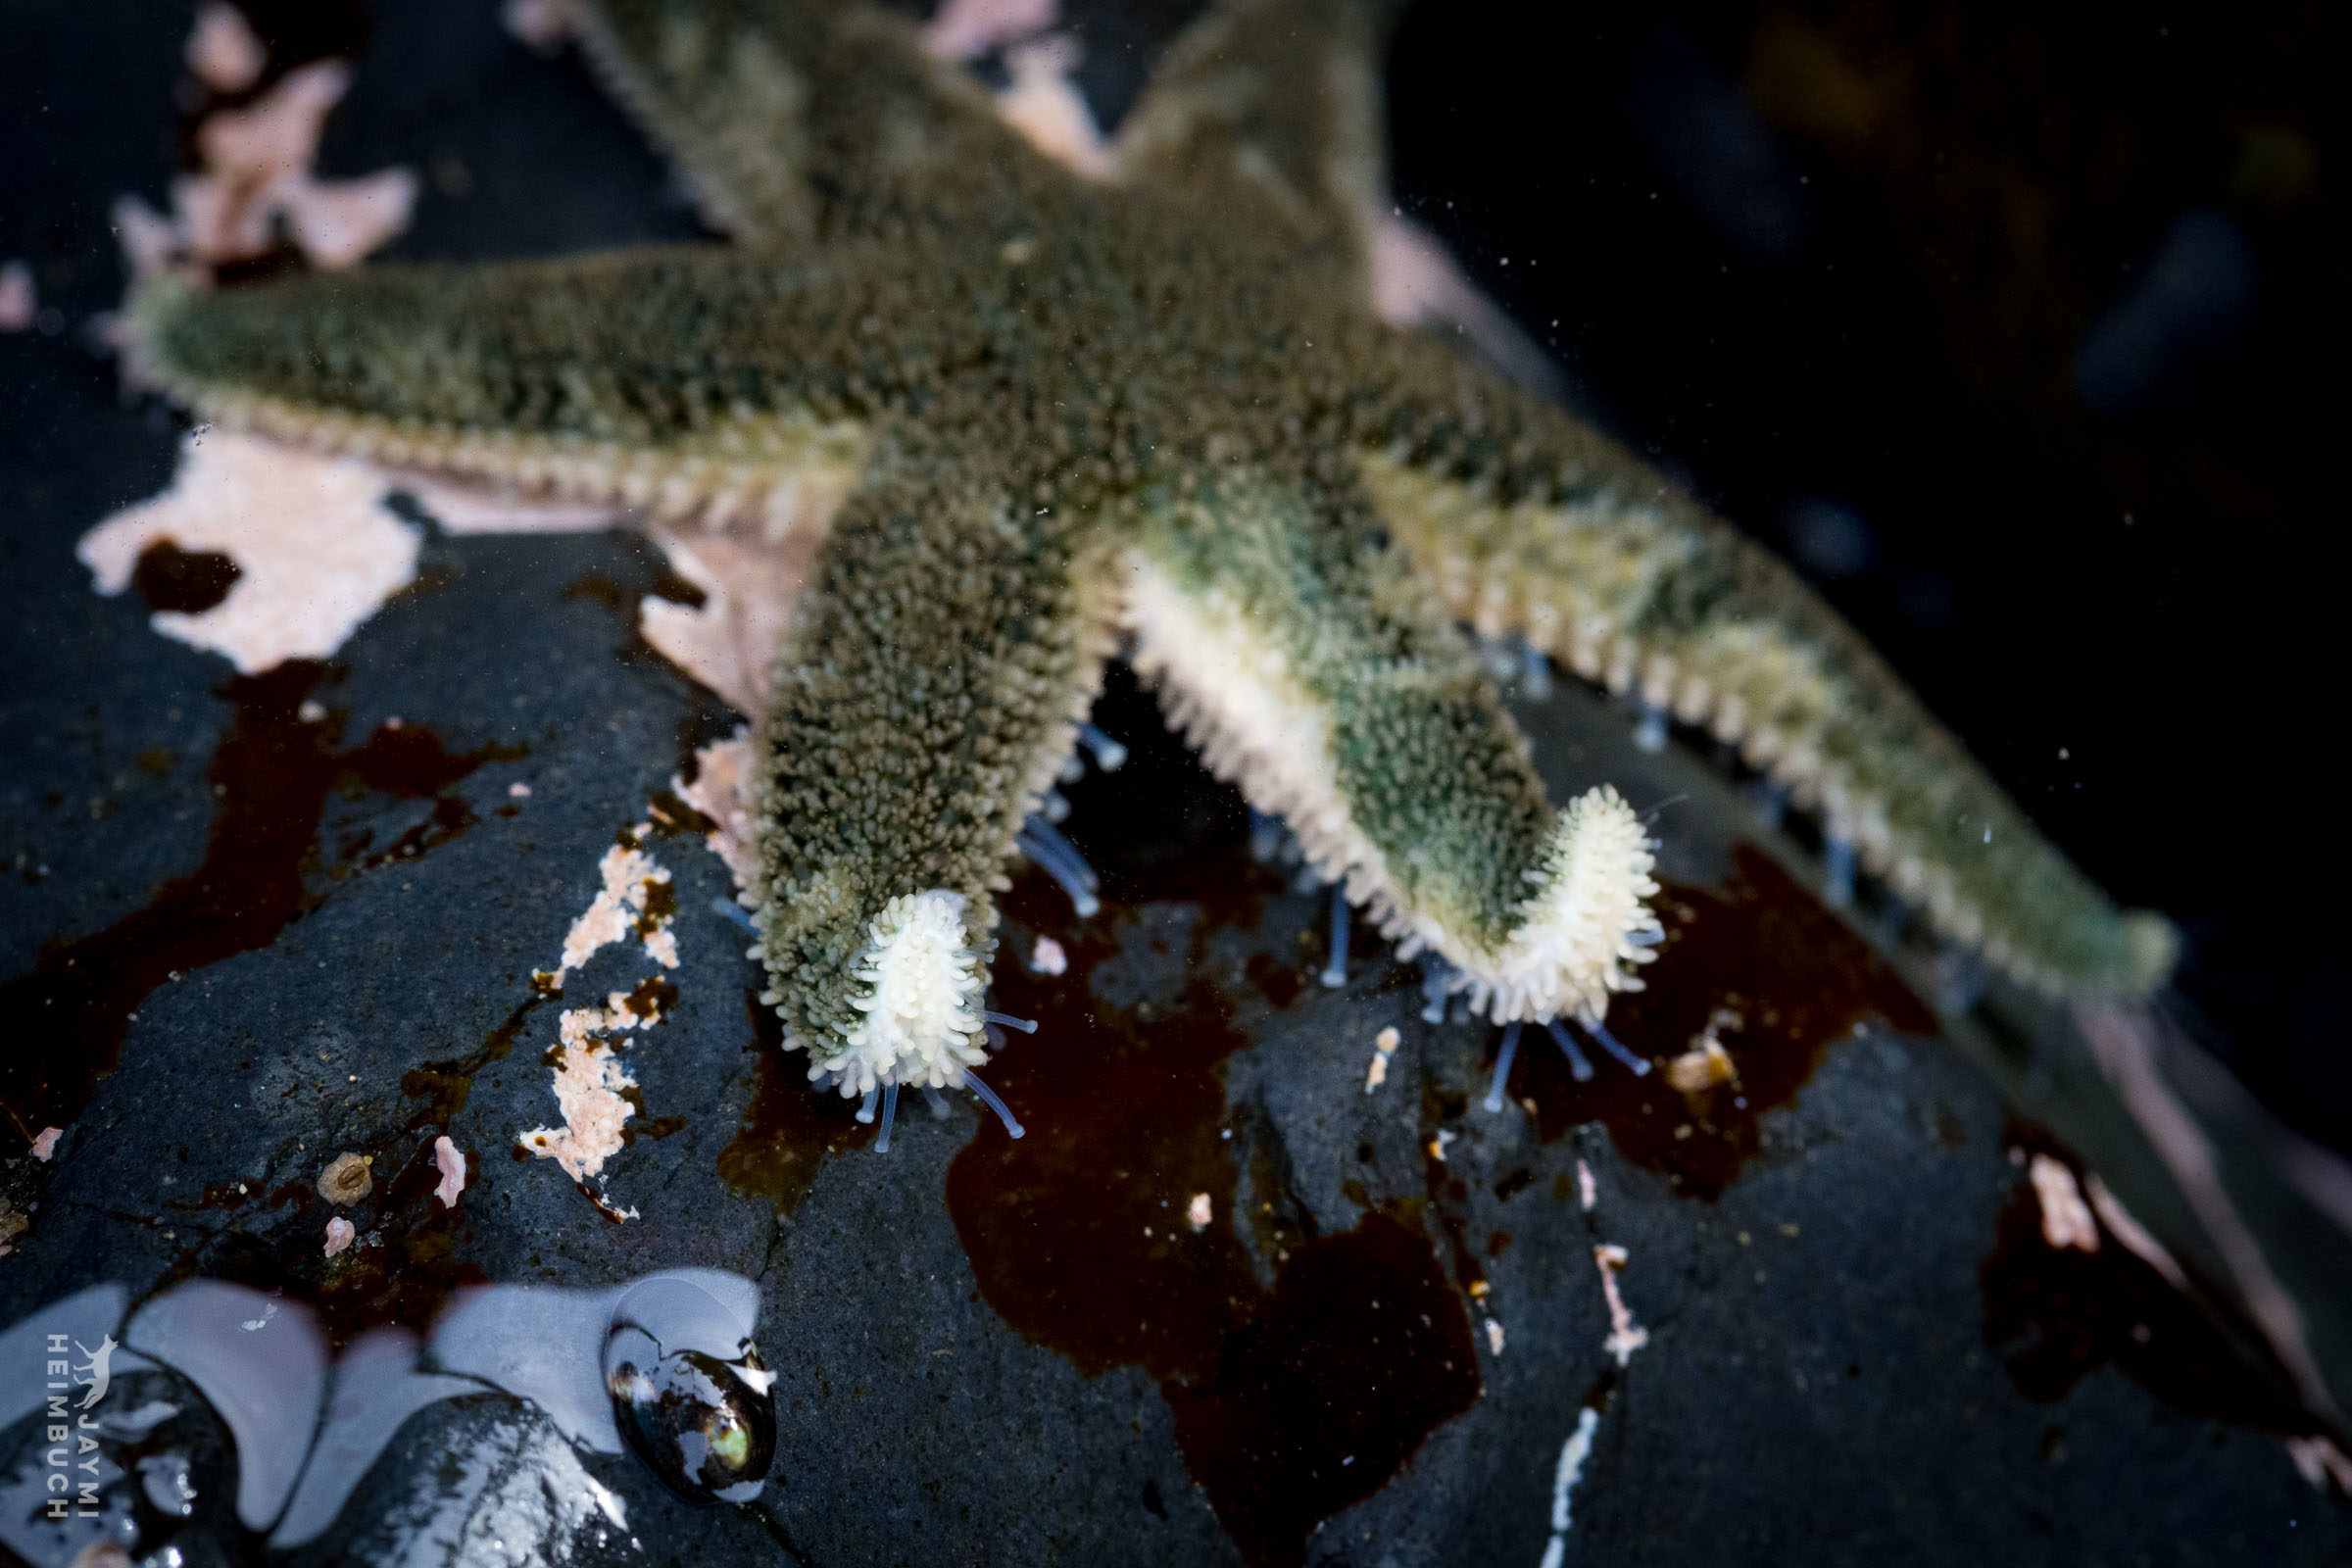 A delicate six-armed sea star (Leptasterias aequalis) showing off its tiny tube feet. Newport, Oregon